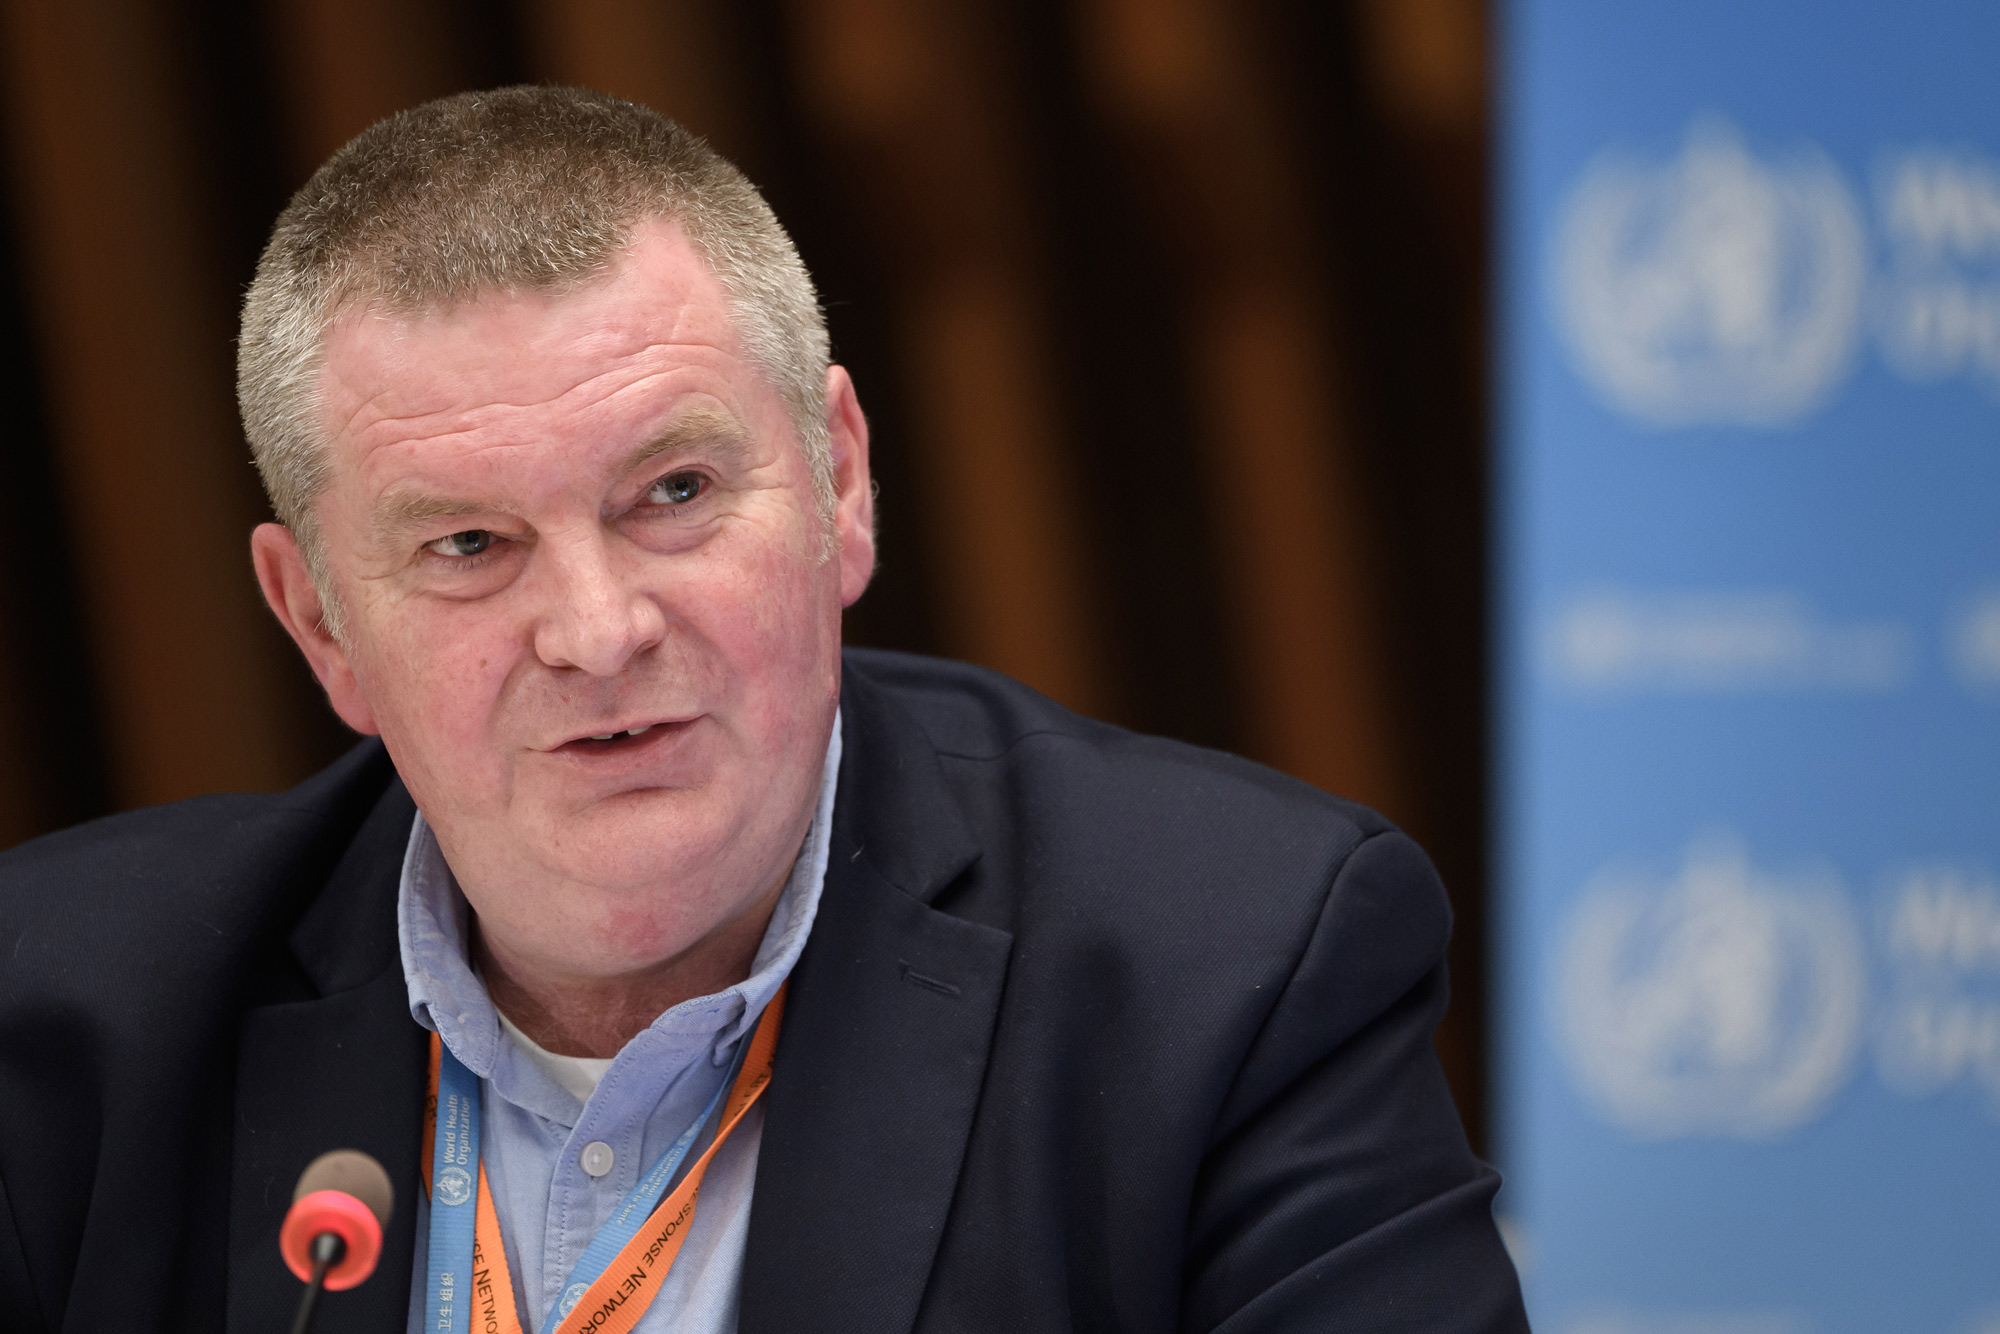 WHO Health Emergencies Program head Michael Ryan attends a press conference on July 3 at the WHO headquarters in Geneva, Switzerland.